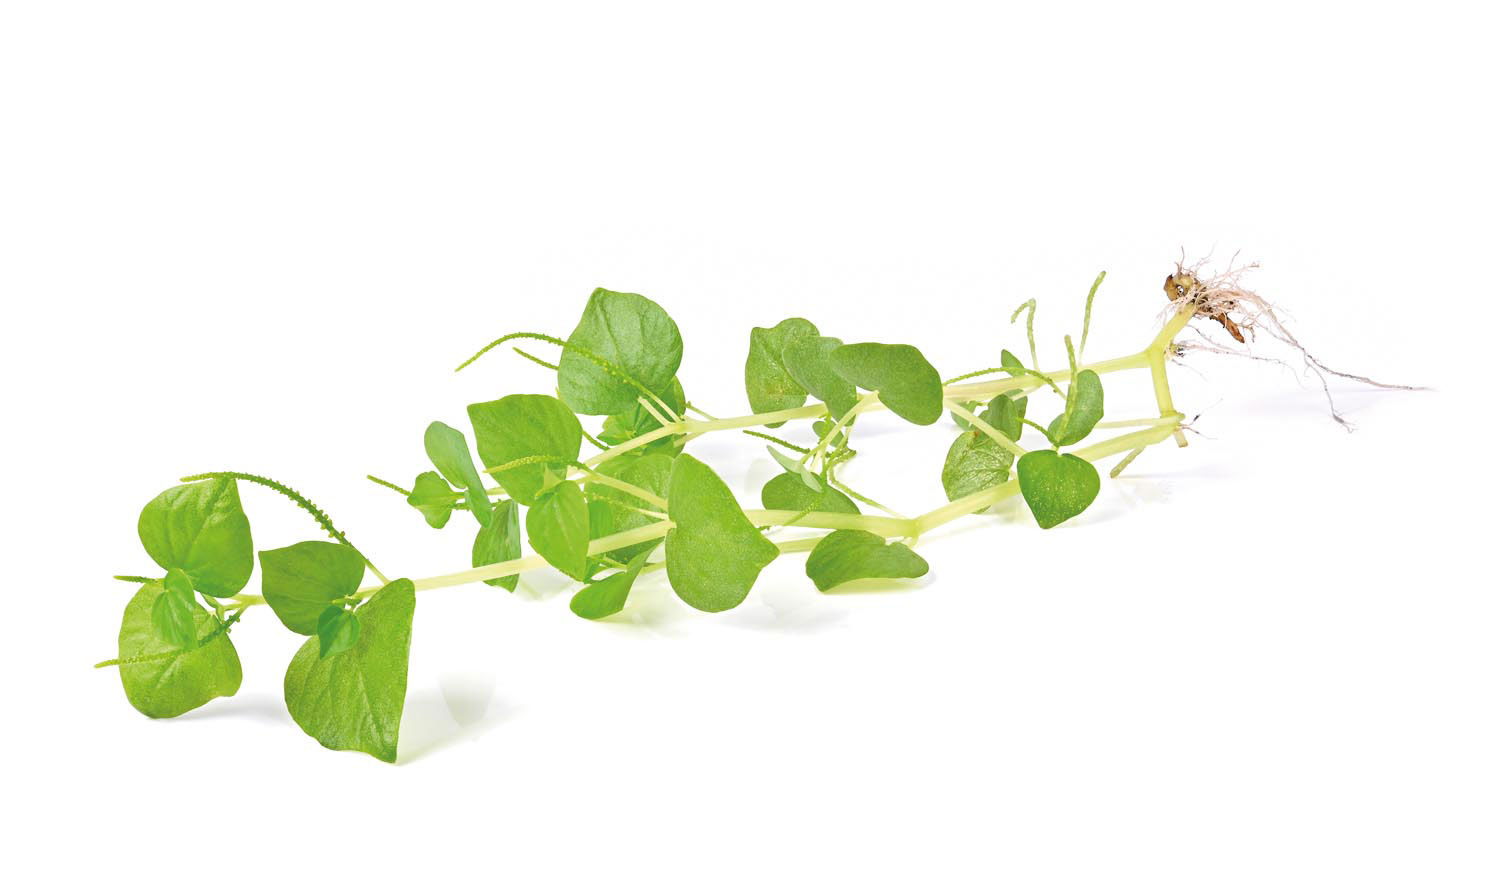 Shining bush, a common wild herb found in many backyards, may have cholesterol-reducing properties. Photo by Macmontree/Shutterstock.com